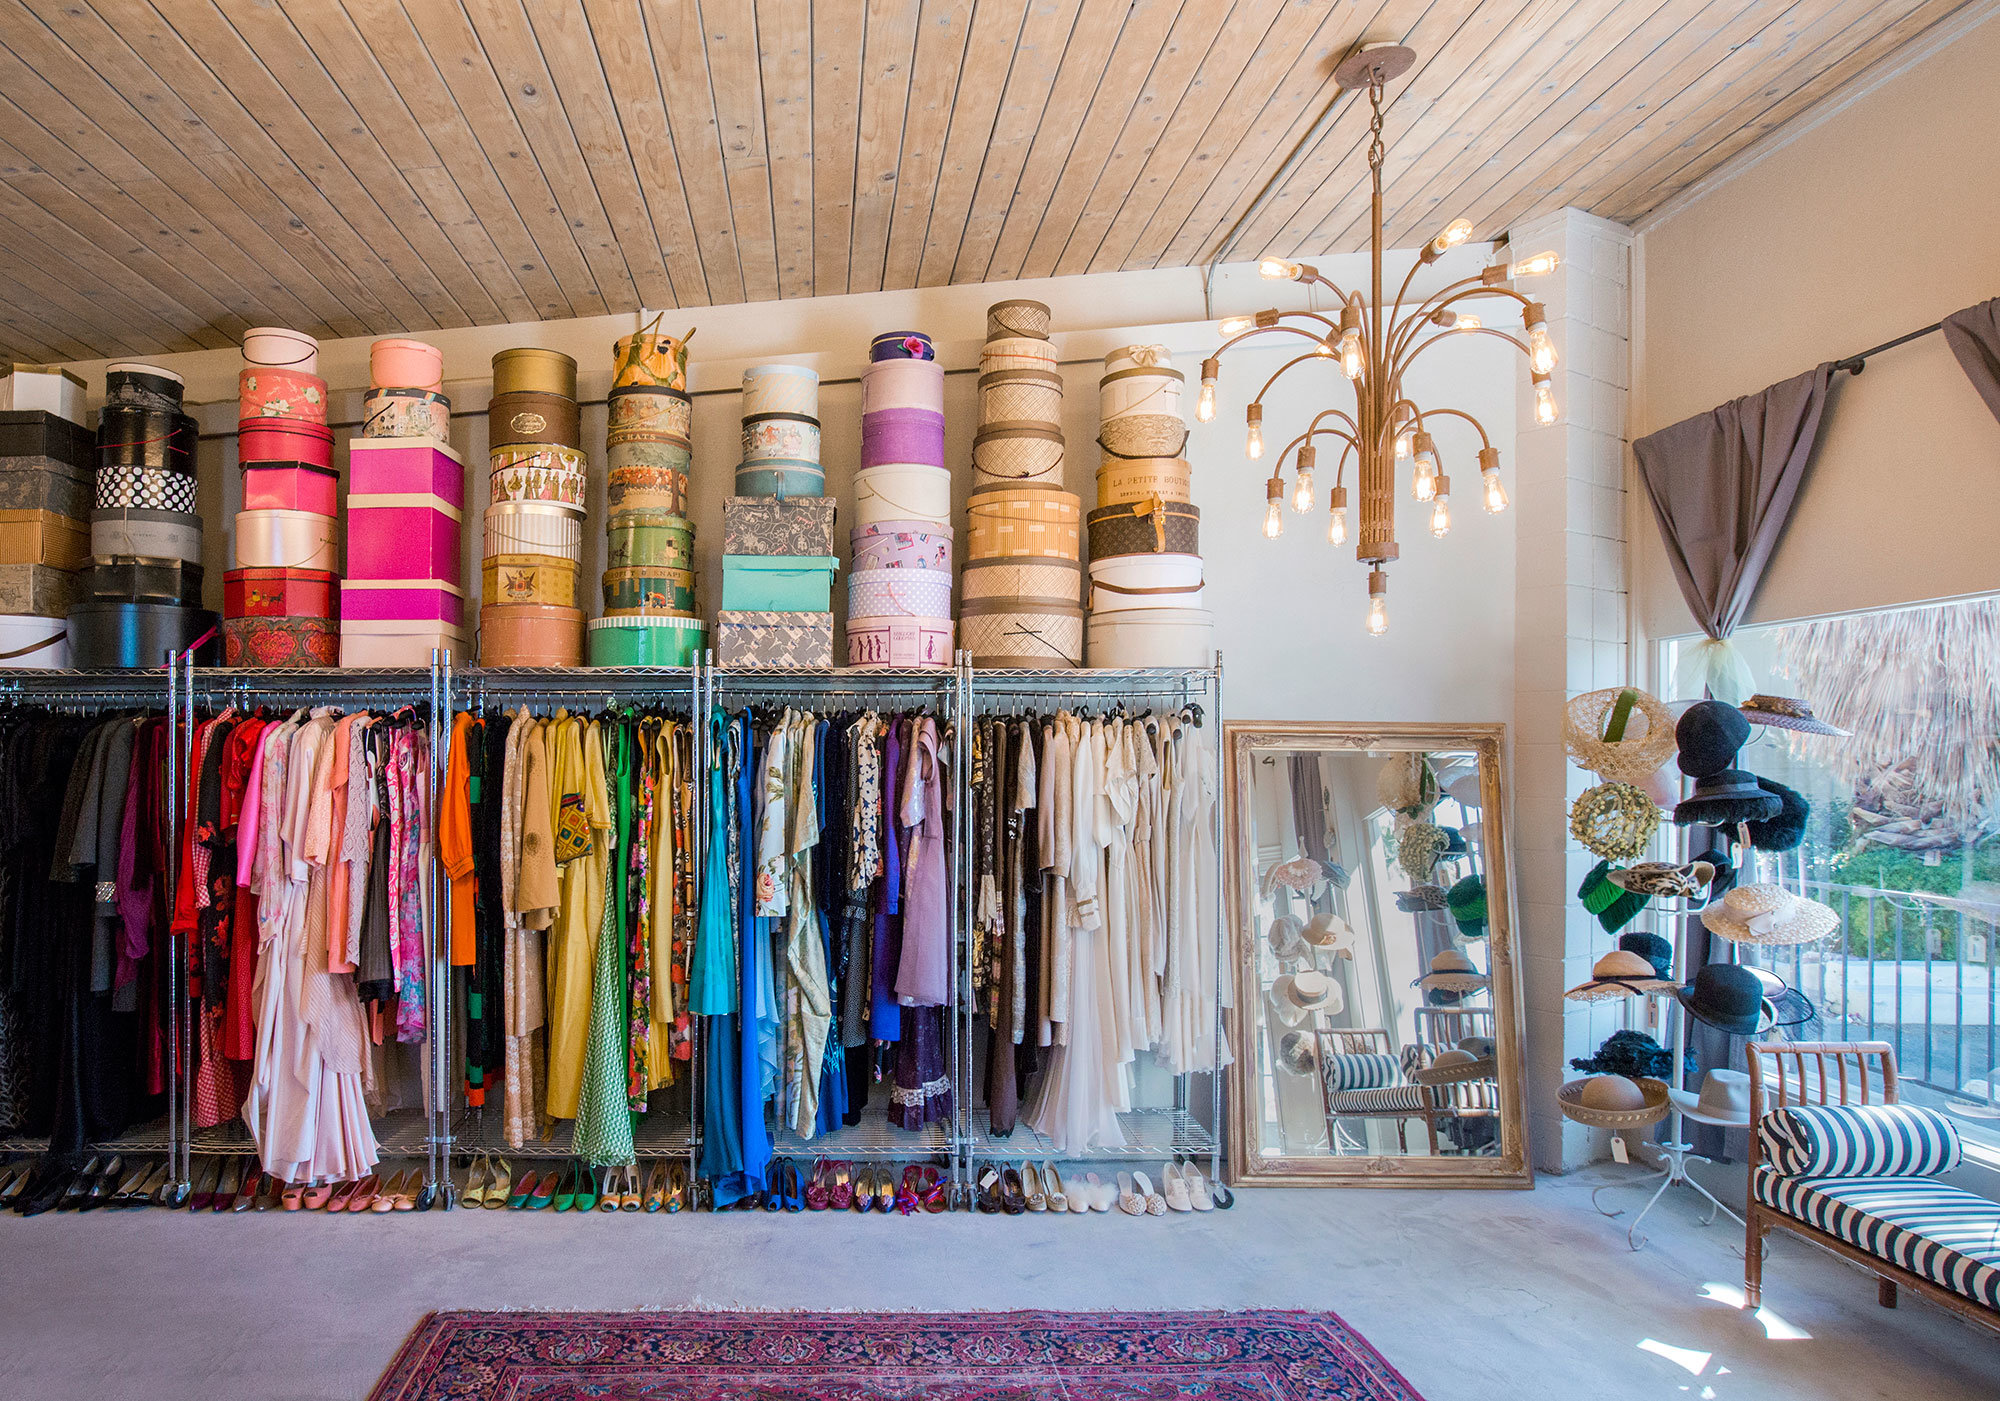 Best Vintage Shops In Palm Springs For Designer Fashion | InStyle.com